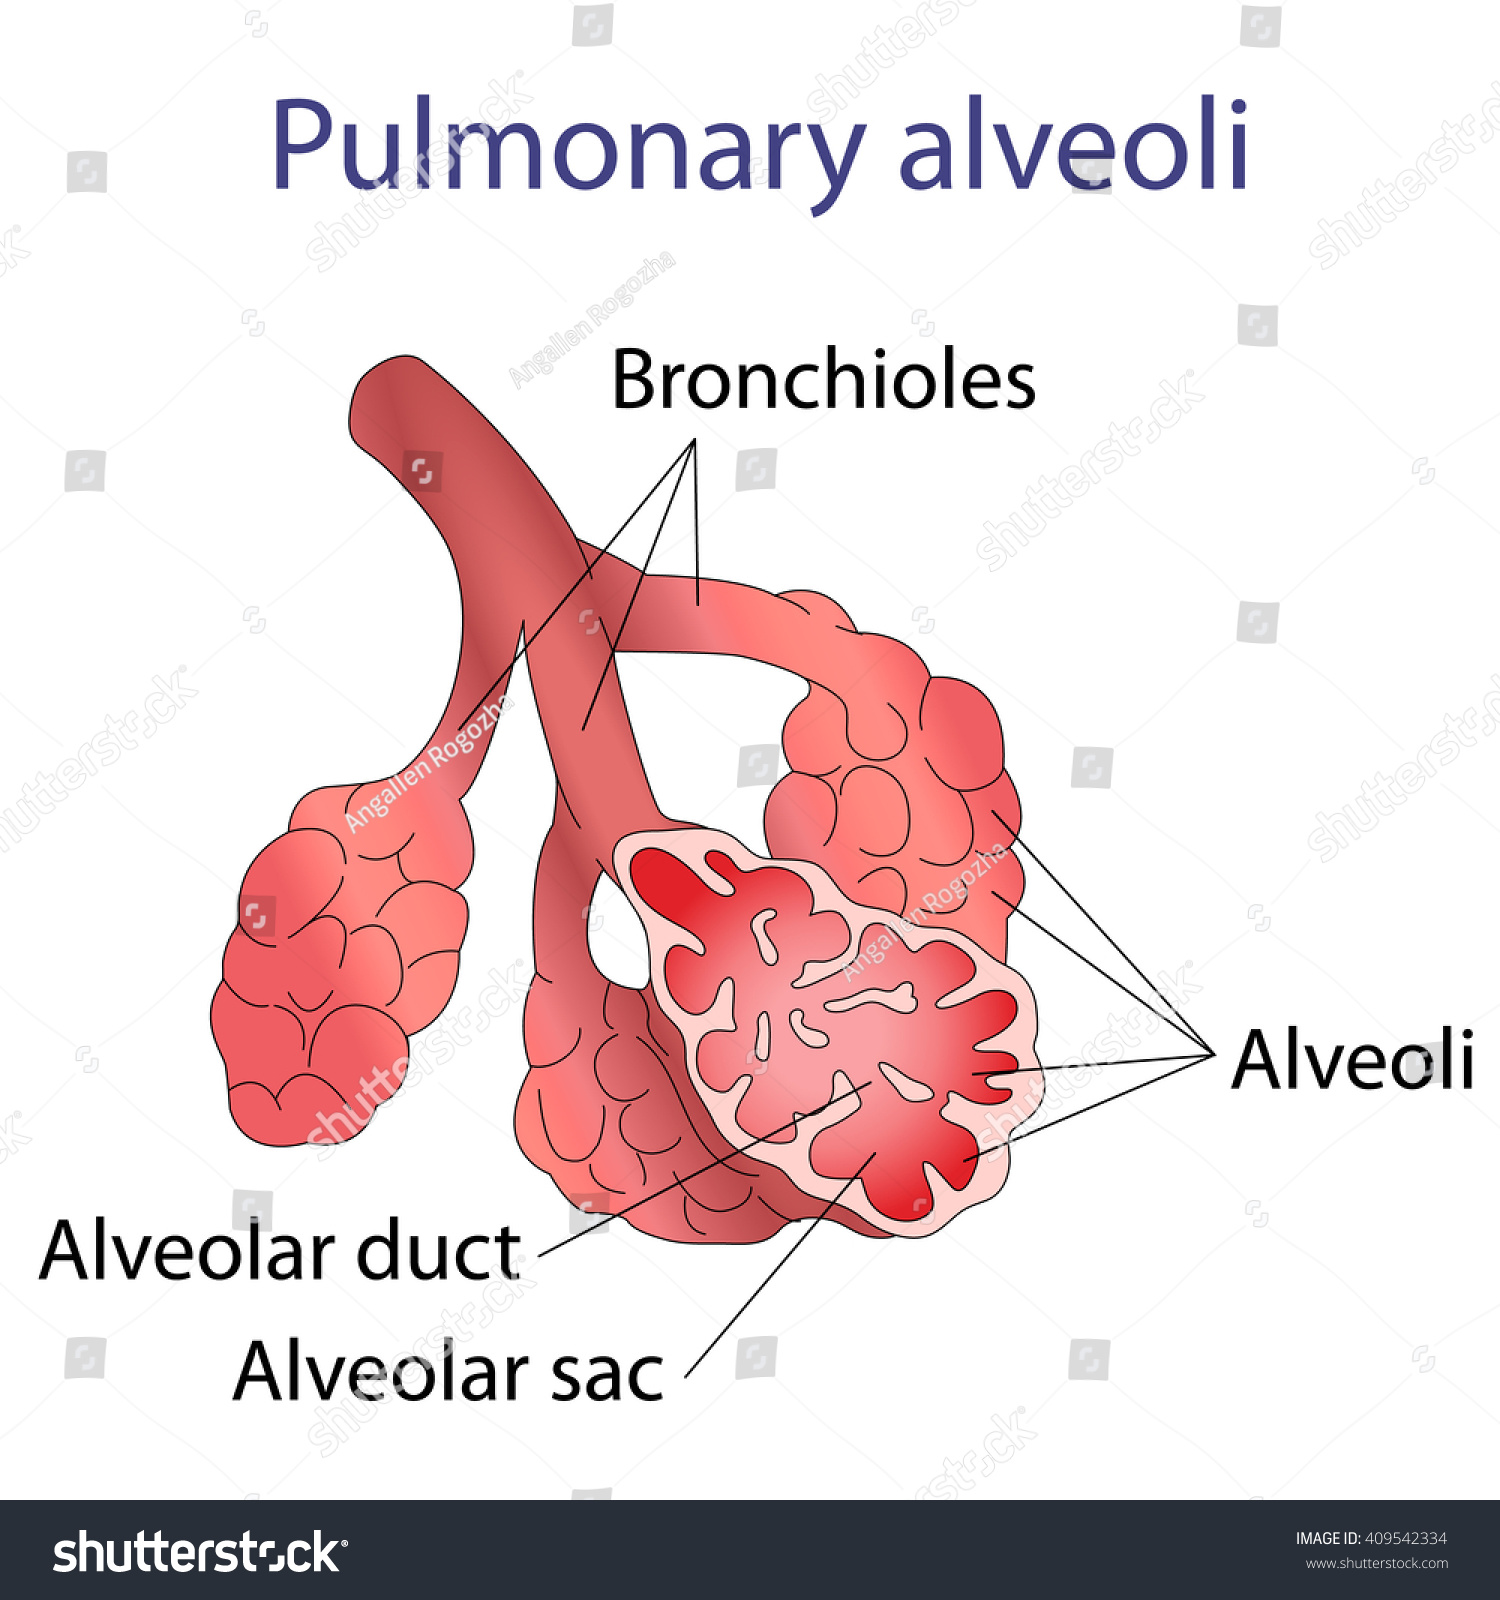 Illustration Human Alveoli Structure Stock Photo (Photo, Vector ...